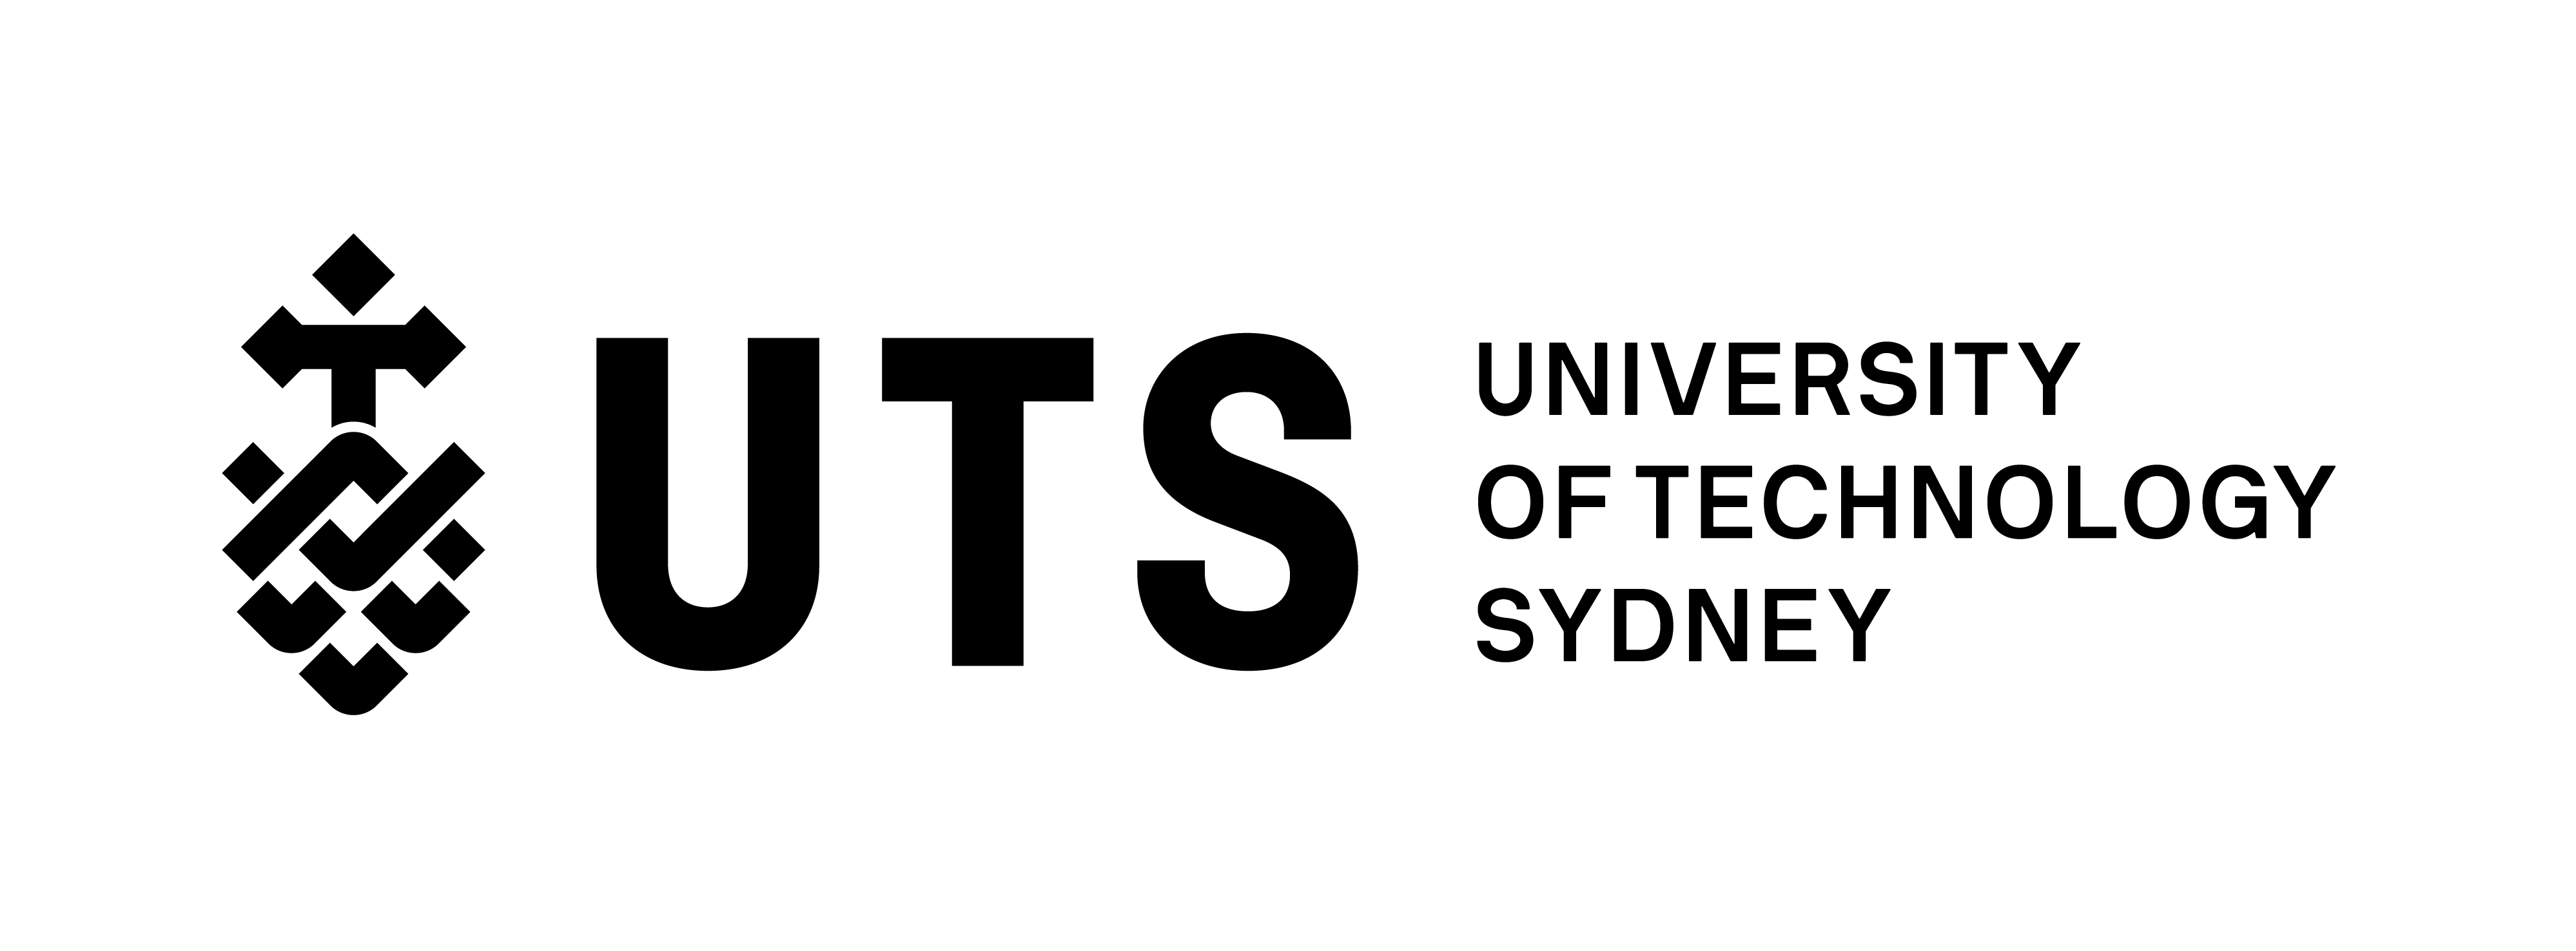 University of Technology Sydney - Bachelor of Business / Bachelor of Creative Intelligence and Innovation